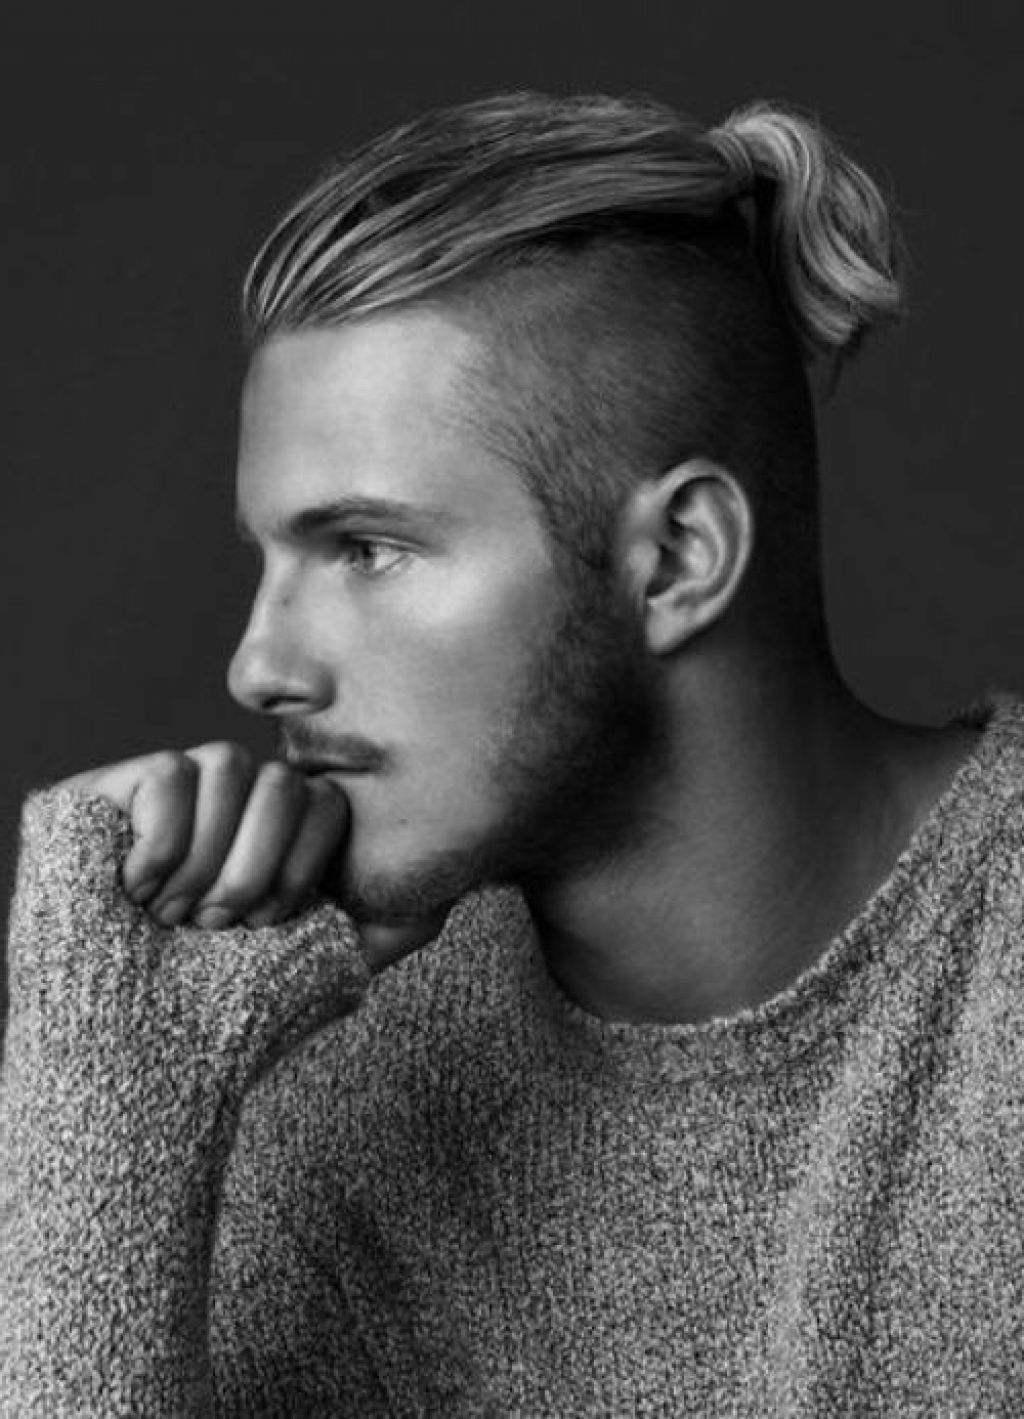 MAN WITH LONG HAIR TOP PONYTAIL Google Search ヘア Pinterest